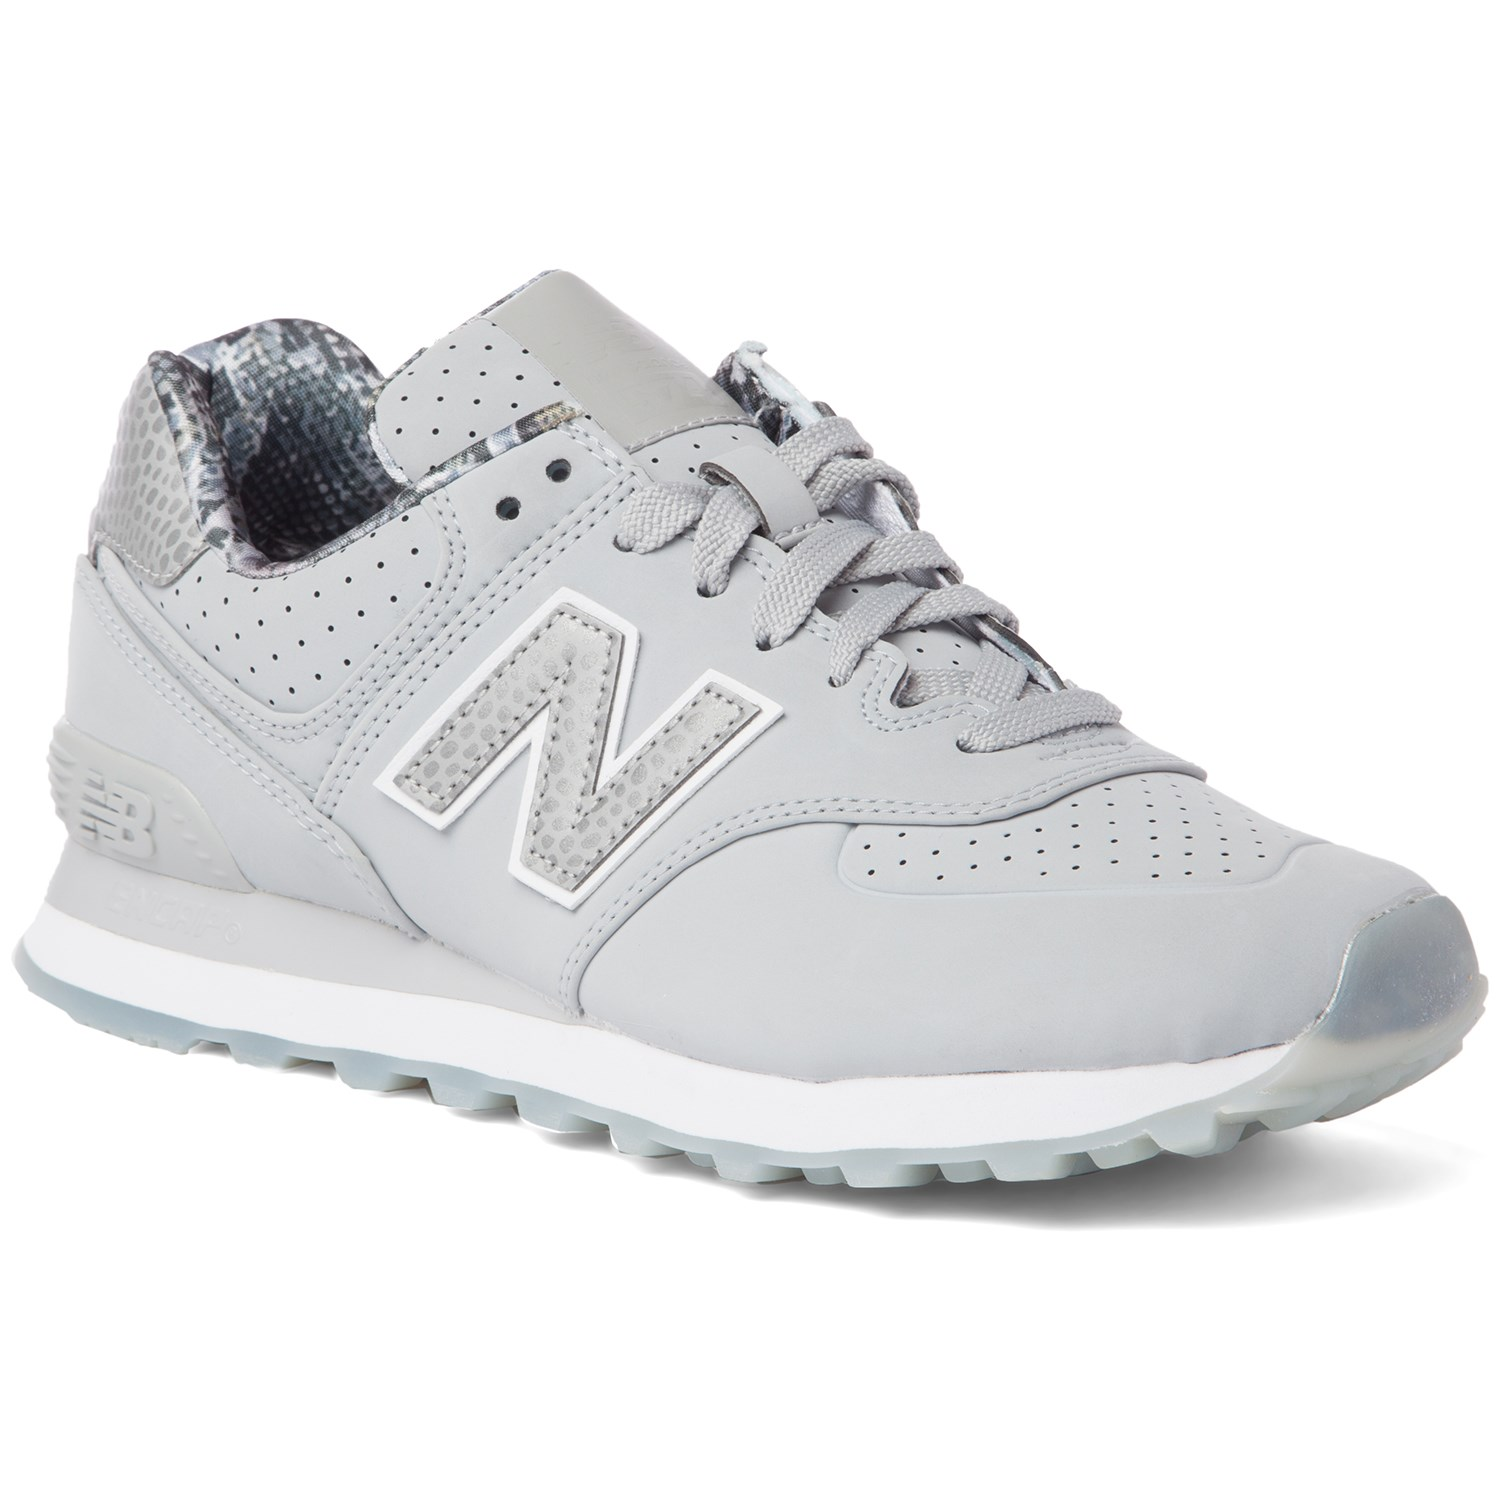 women s new balance shoes 410 pistol the judge